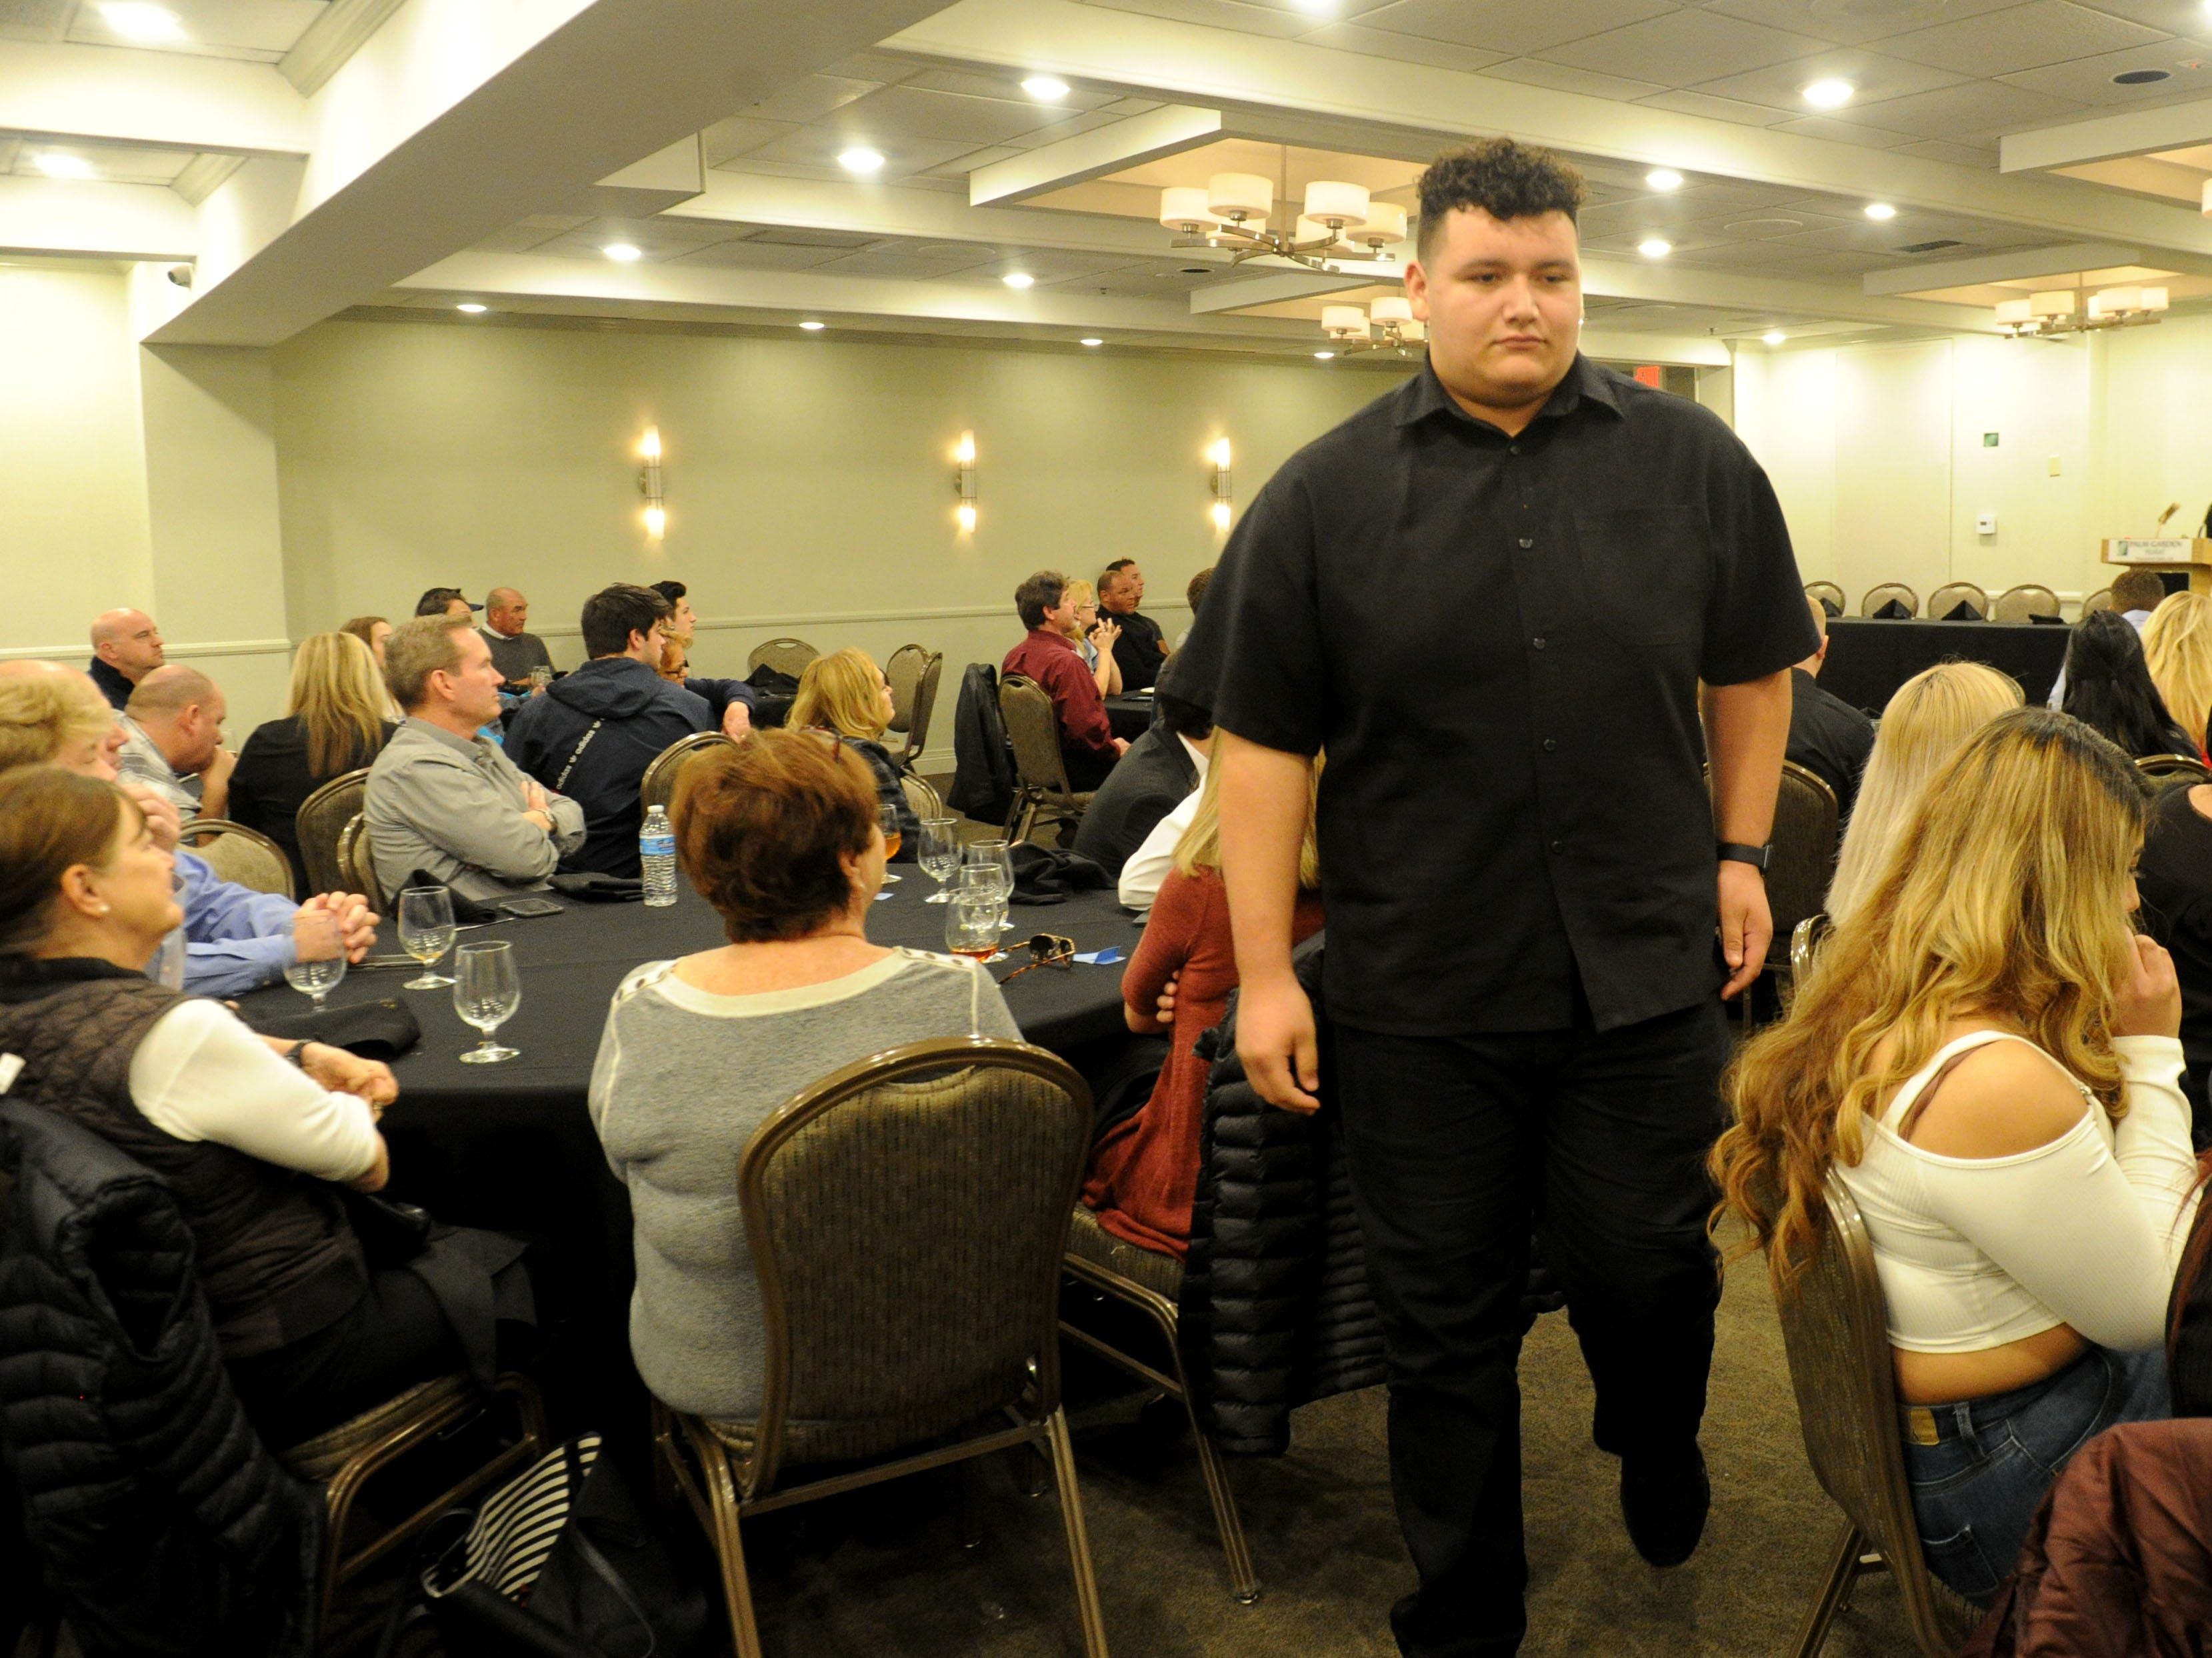 Pacifica High's Armando Sifuentes goes to his table after speaking about his future at Azusa Pacific University during the Ventura County coaches' annual signing day banquet at the Palm Garden Hotel in Newbury Park on Wednesday.